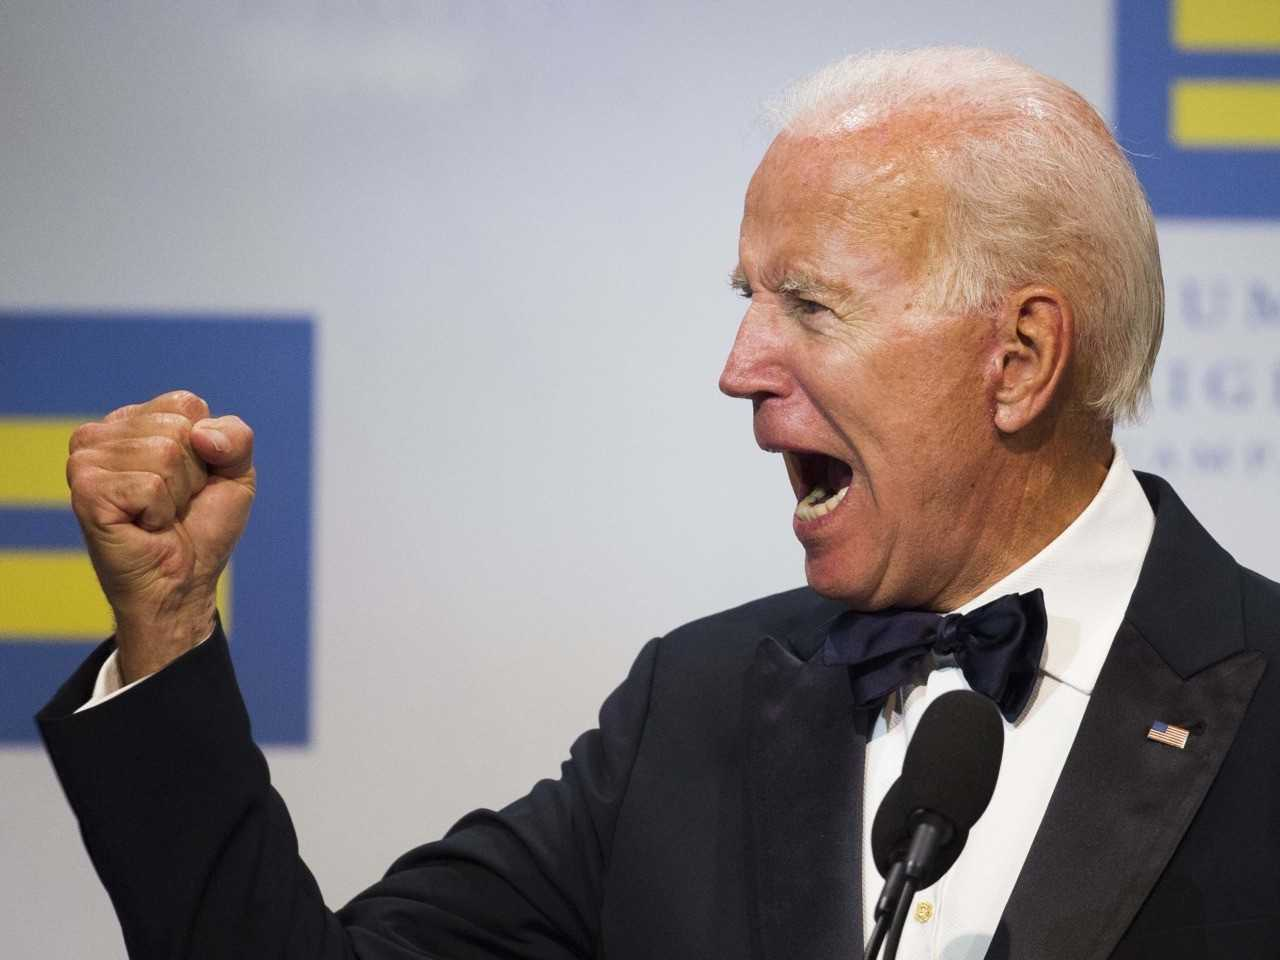 Biden Says American Values Are Being 'Shredded' Under Trump